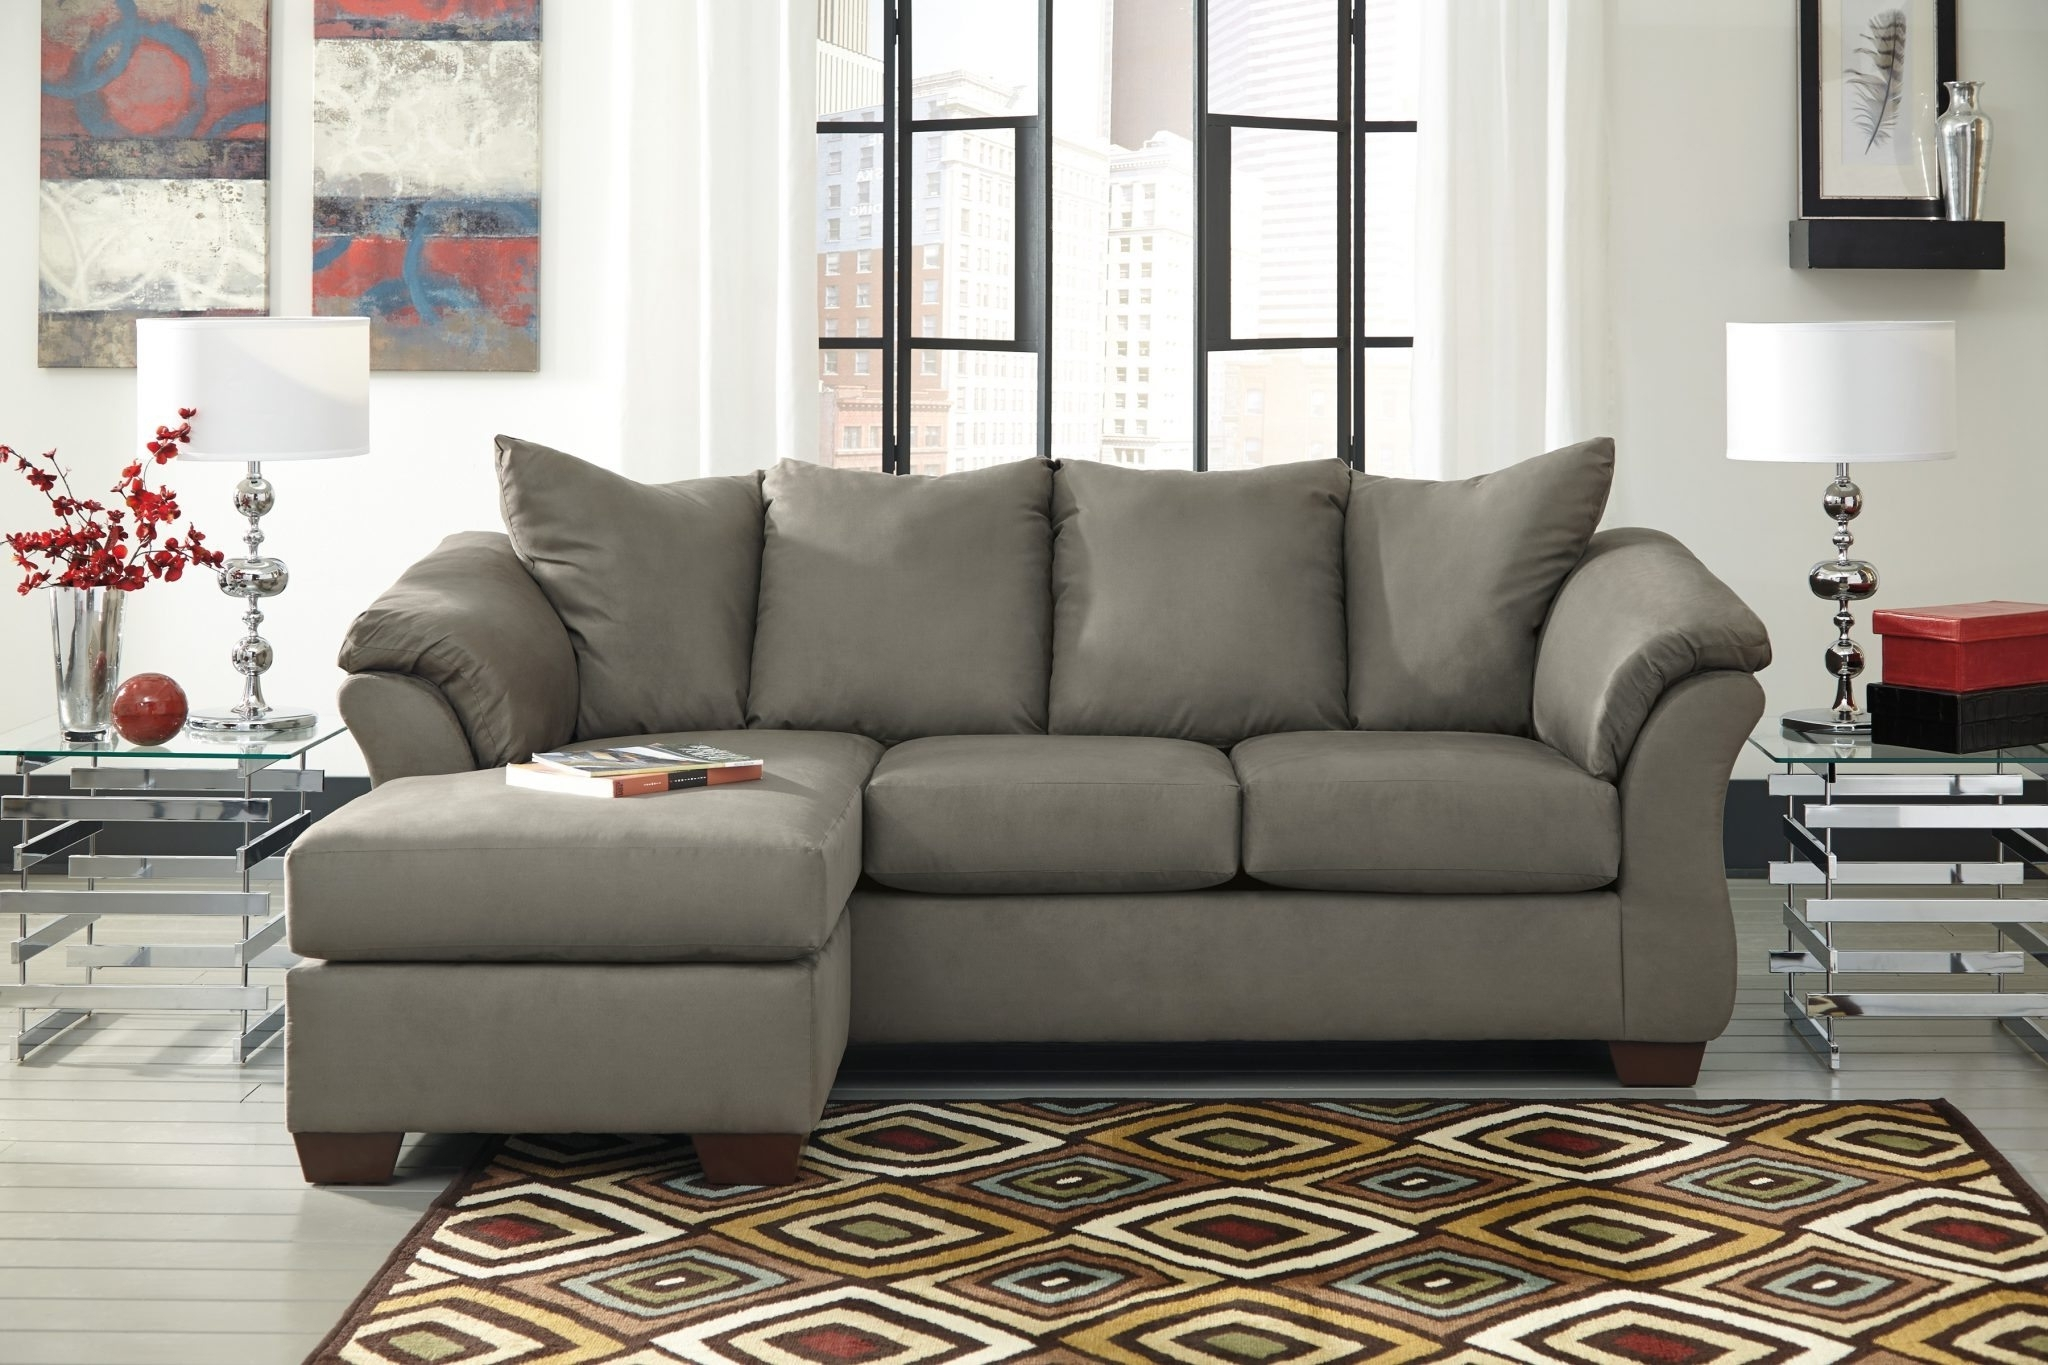 Famous Microfiber Sectionals With Chaise Throughout Best Furniture Mentor Oh: Furniture Store – Ashley Furniture (View 3 of 15)